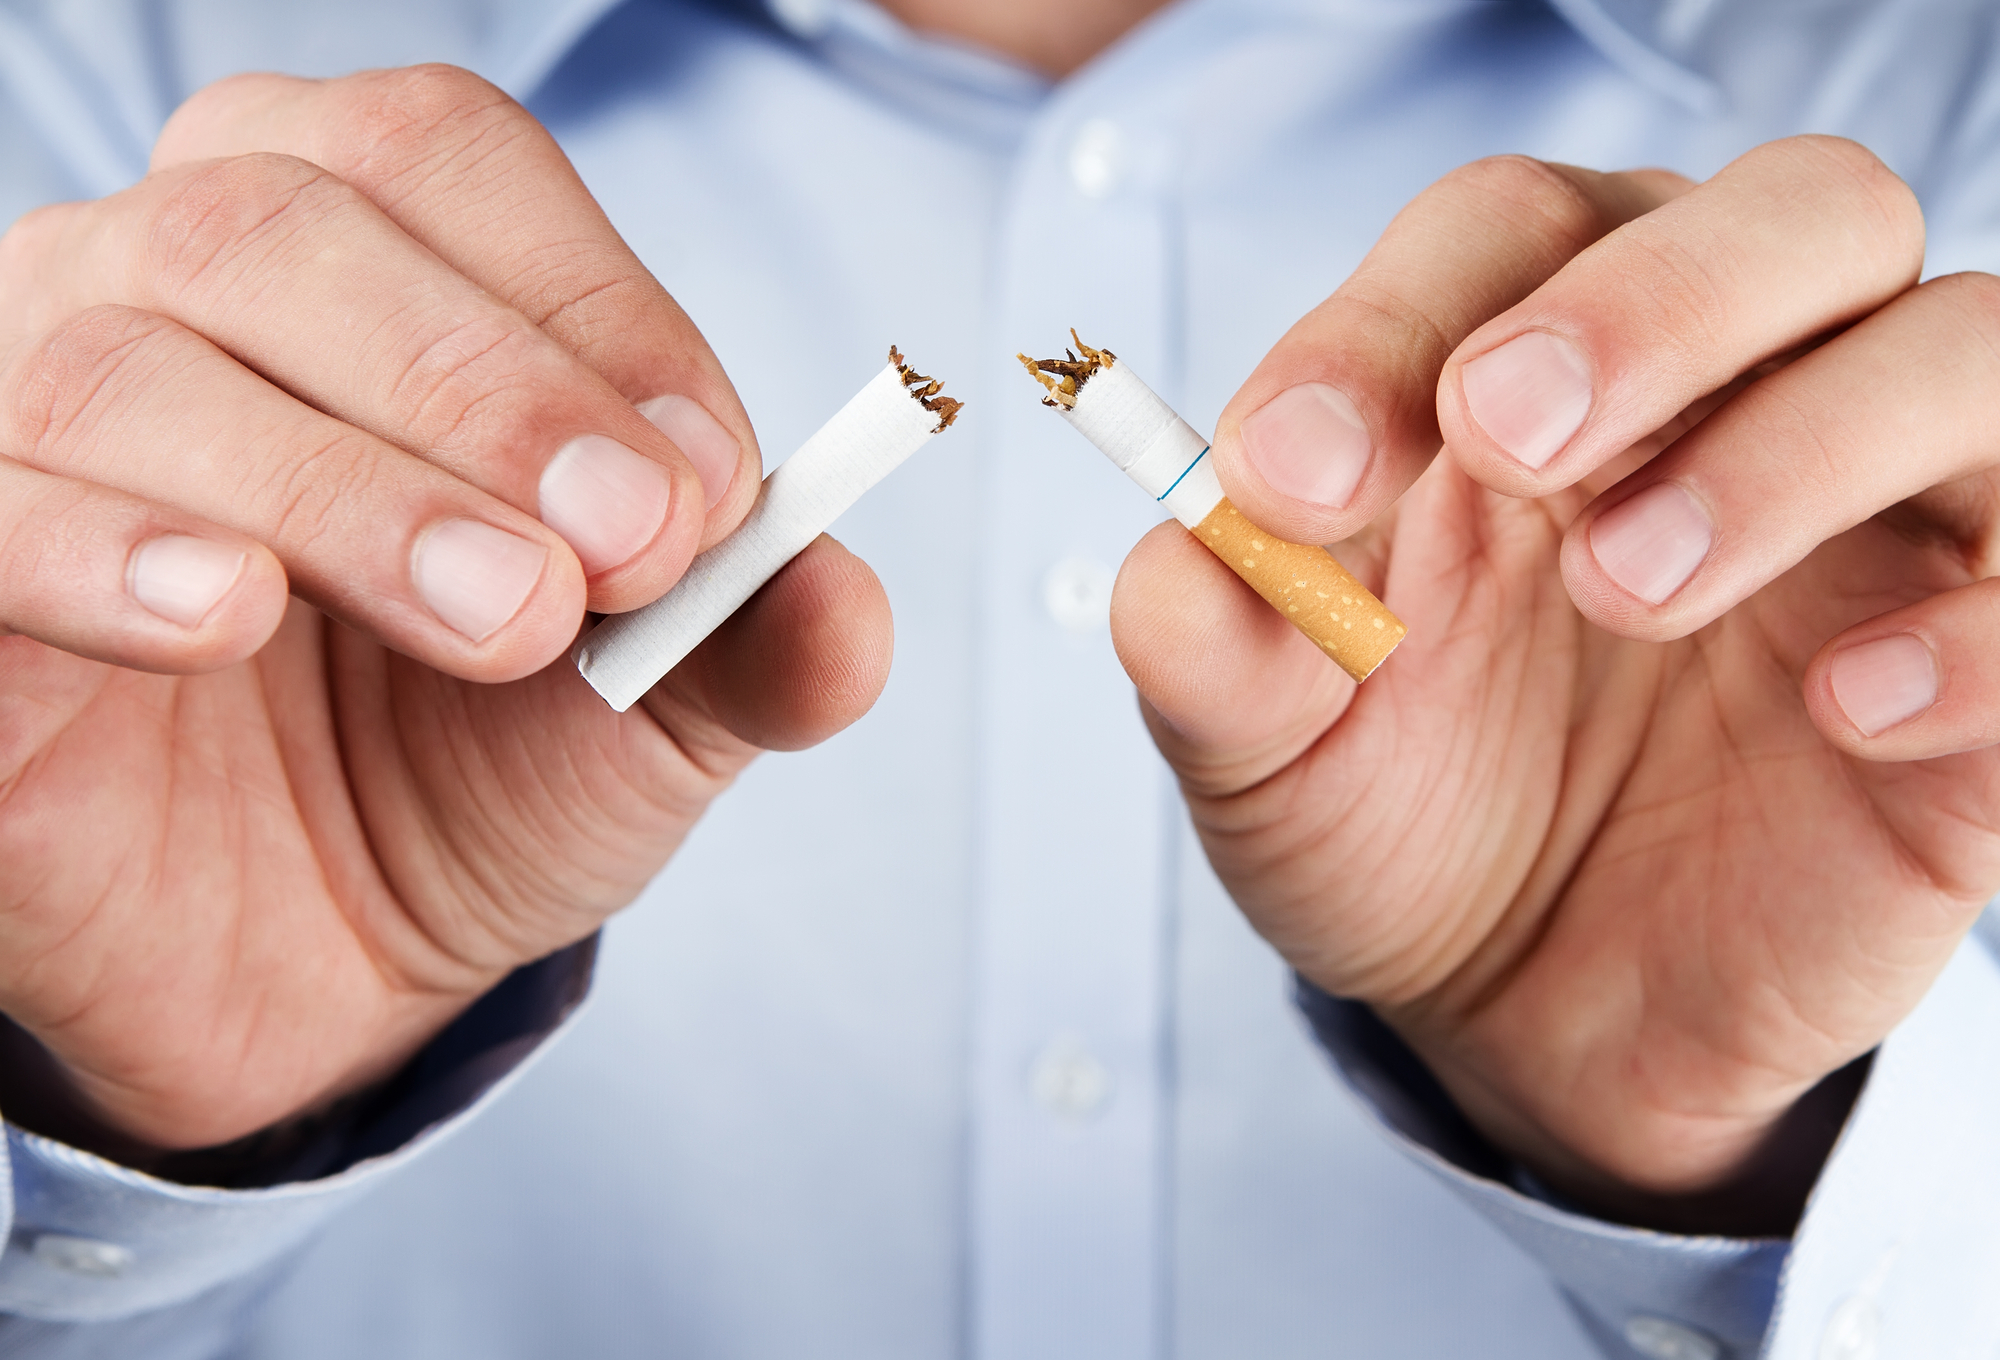 Five products to consider when looking to quit smoking